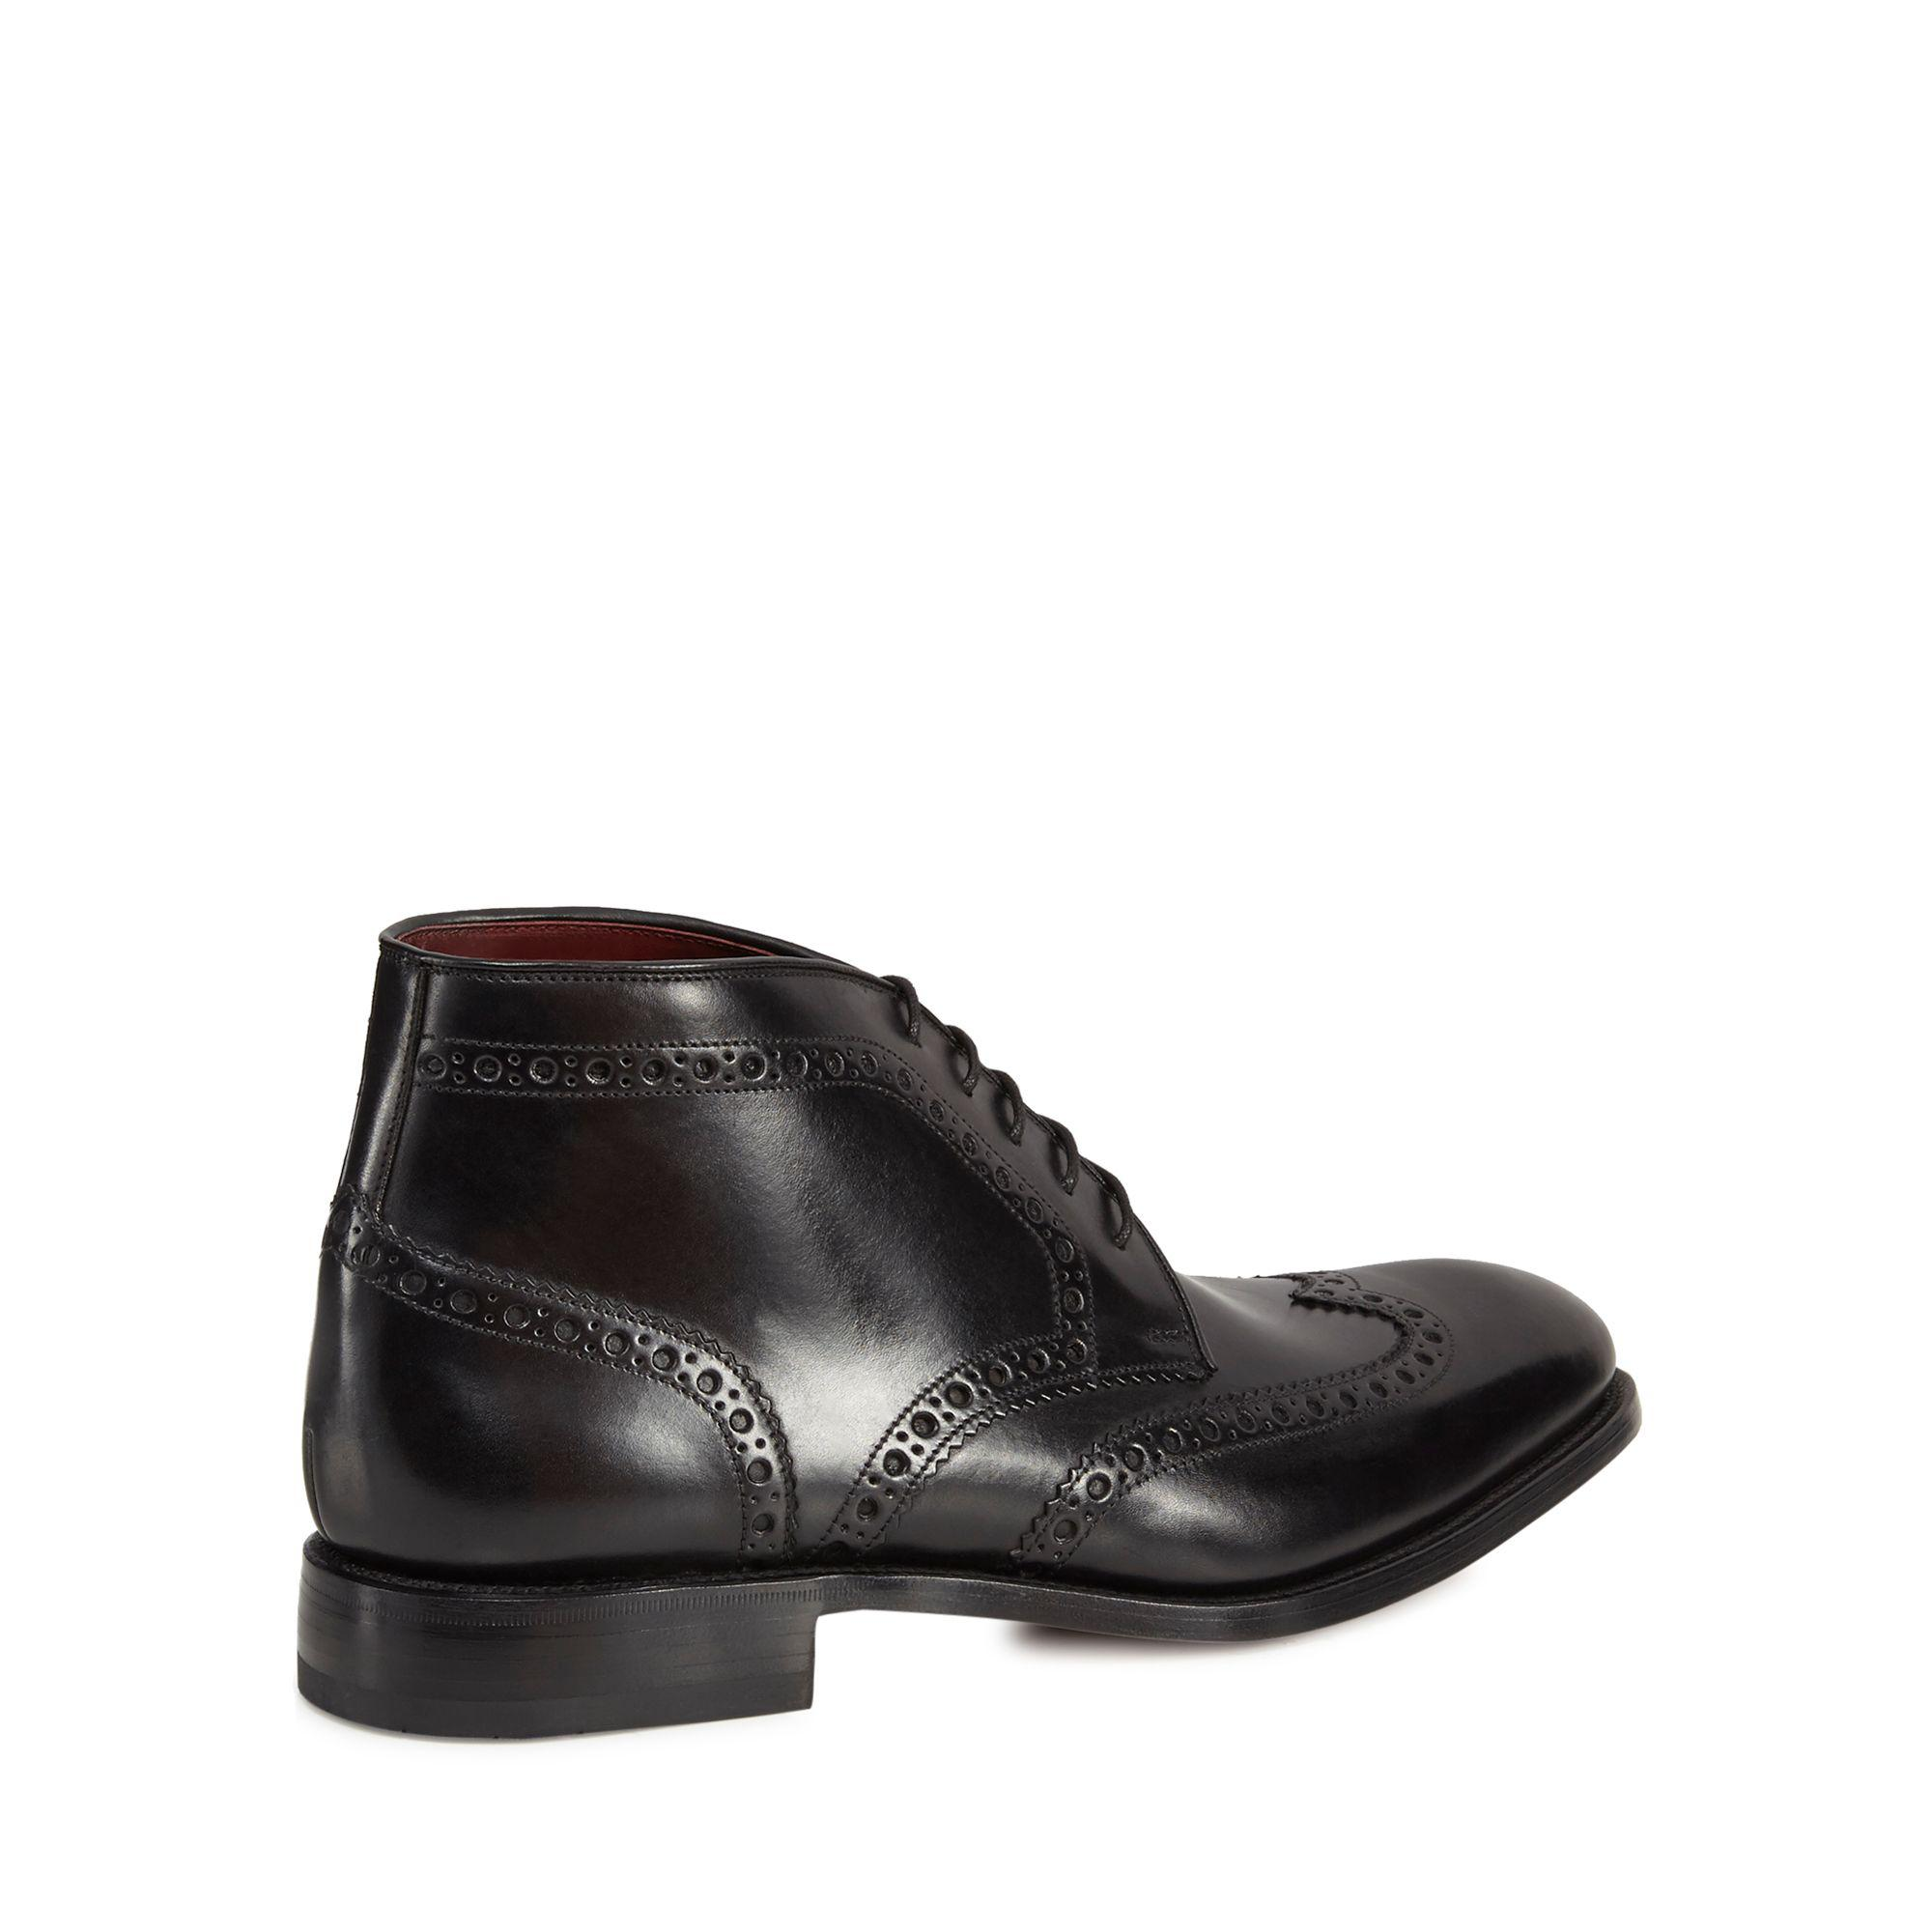 pay with visa sale online low shipping fee for sale Black leather 'Harrington' brogue boots 6XgPR